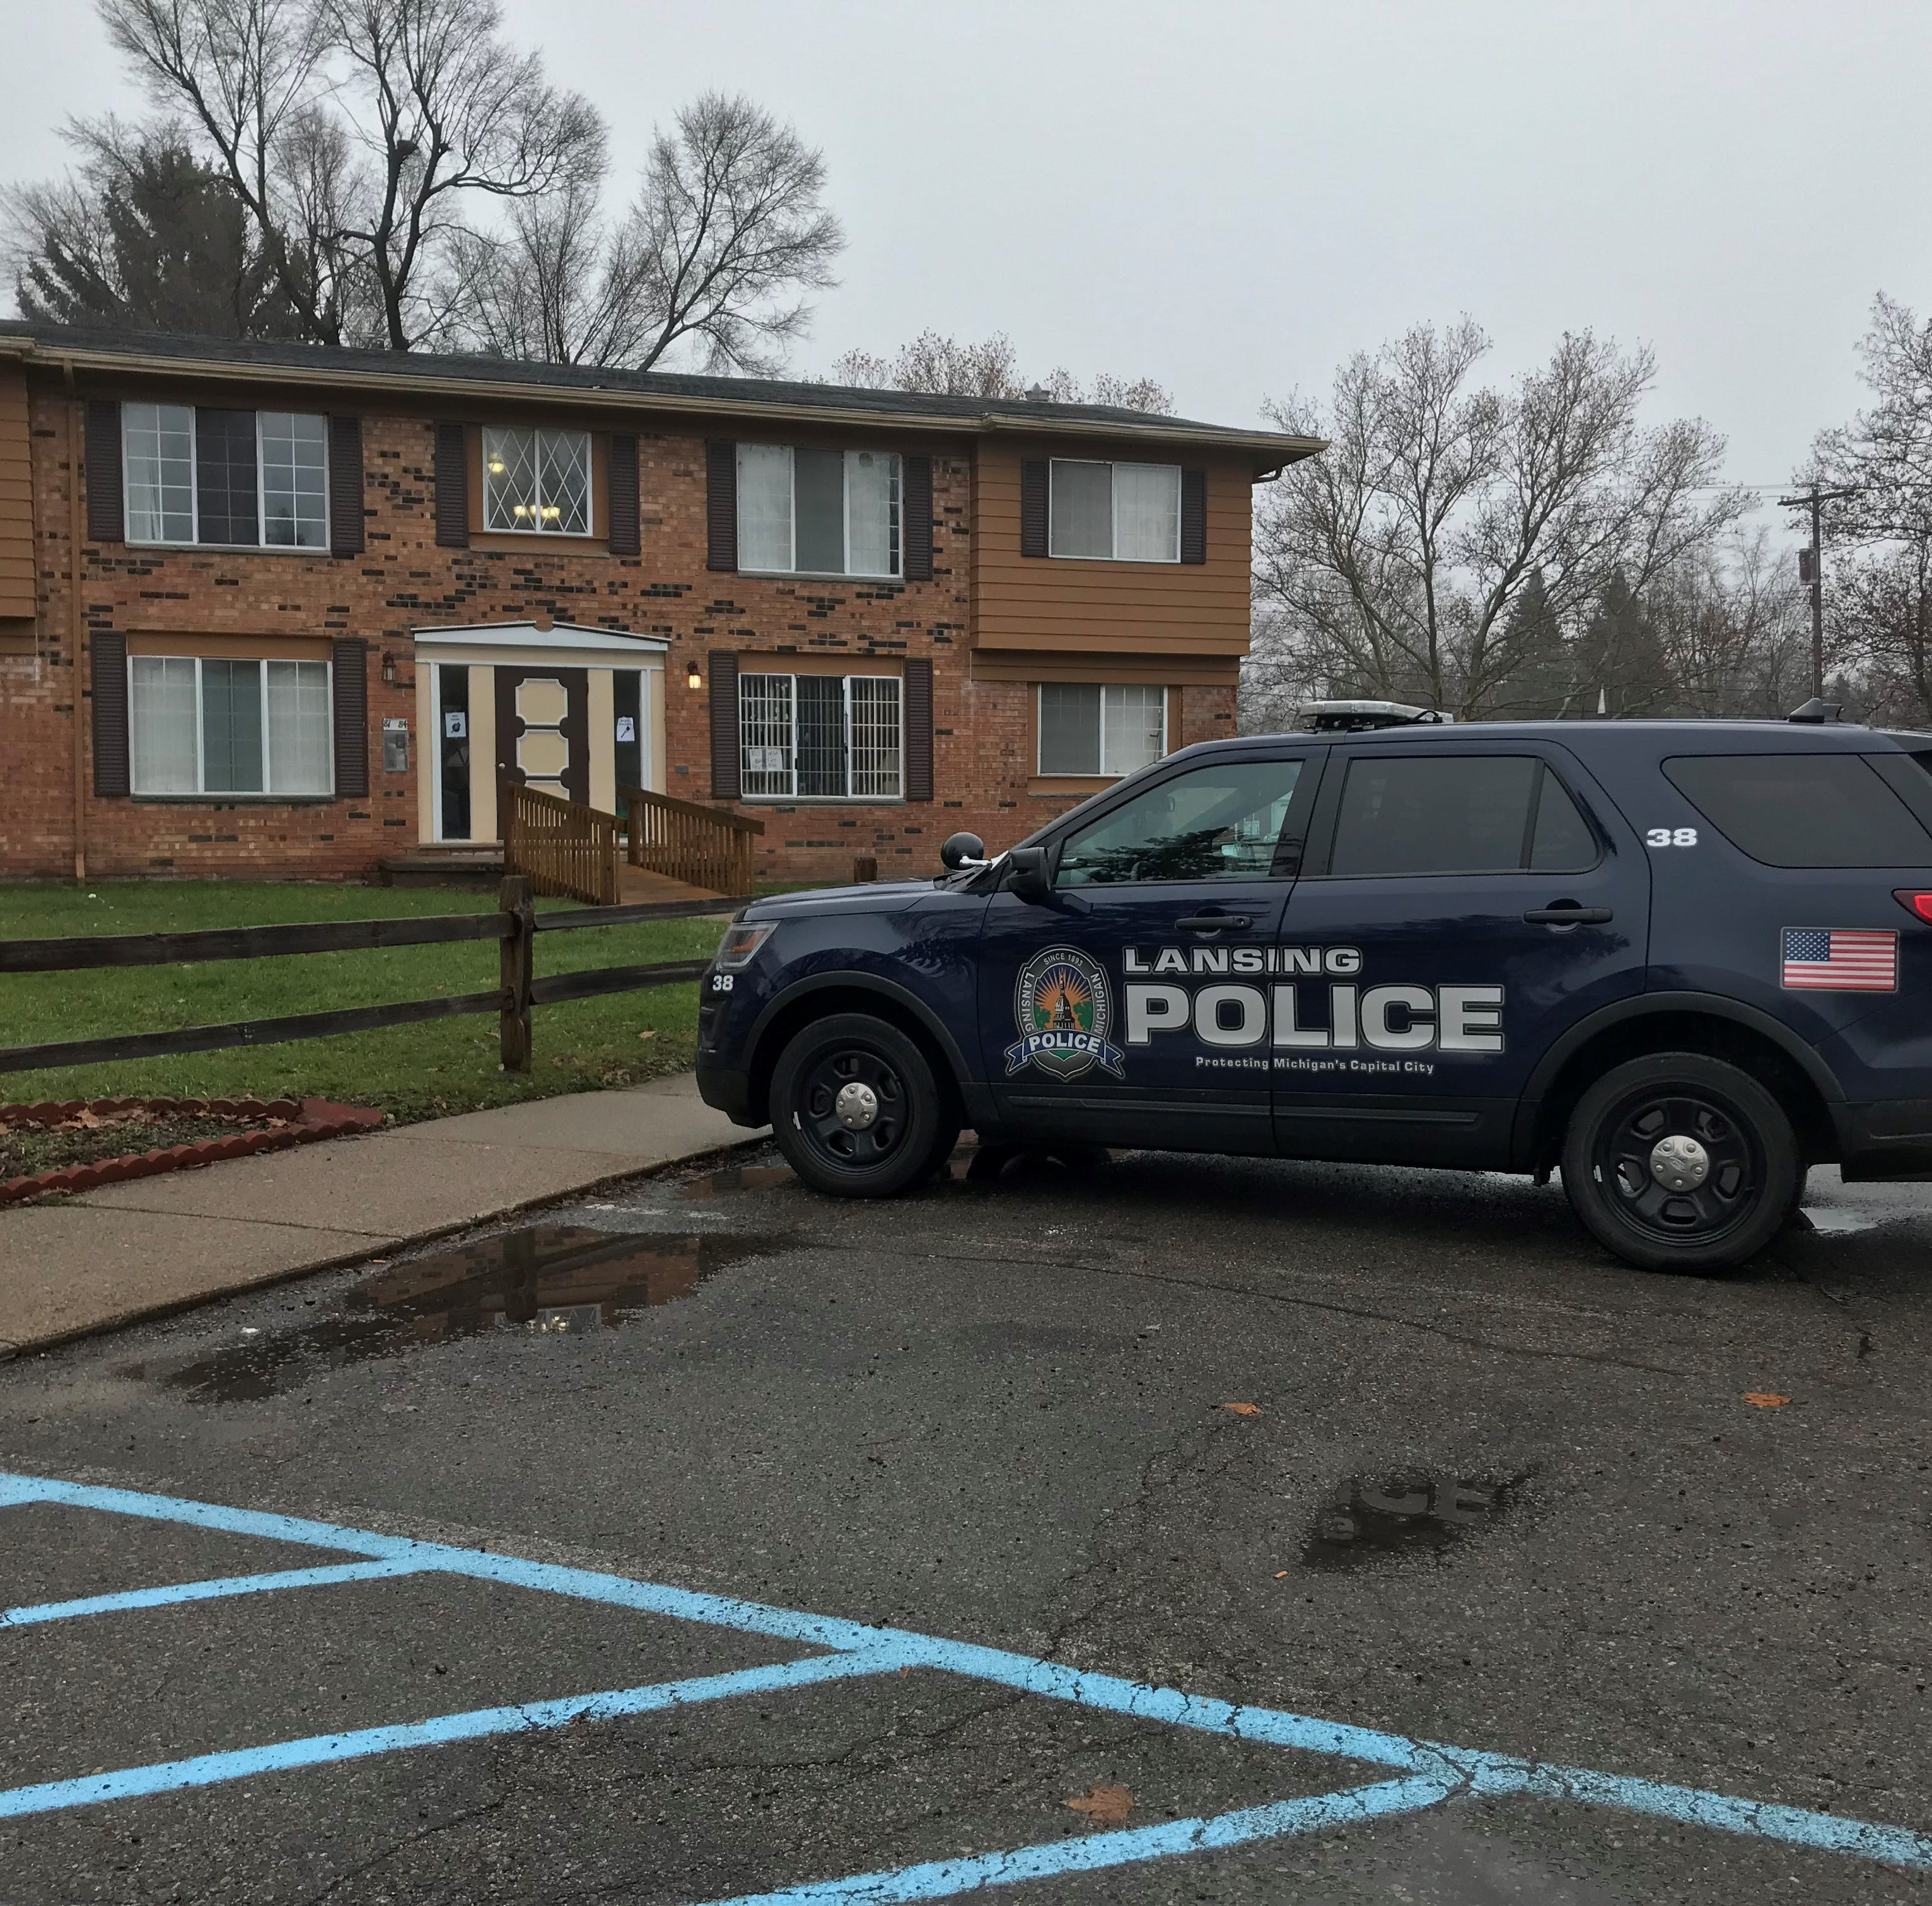 Police investigating body found in Lansing apartment complex as a homicide